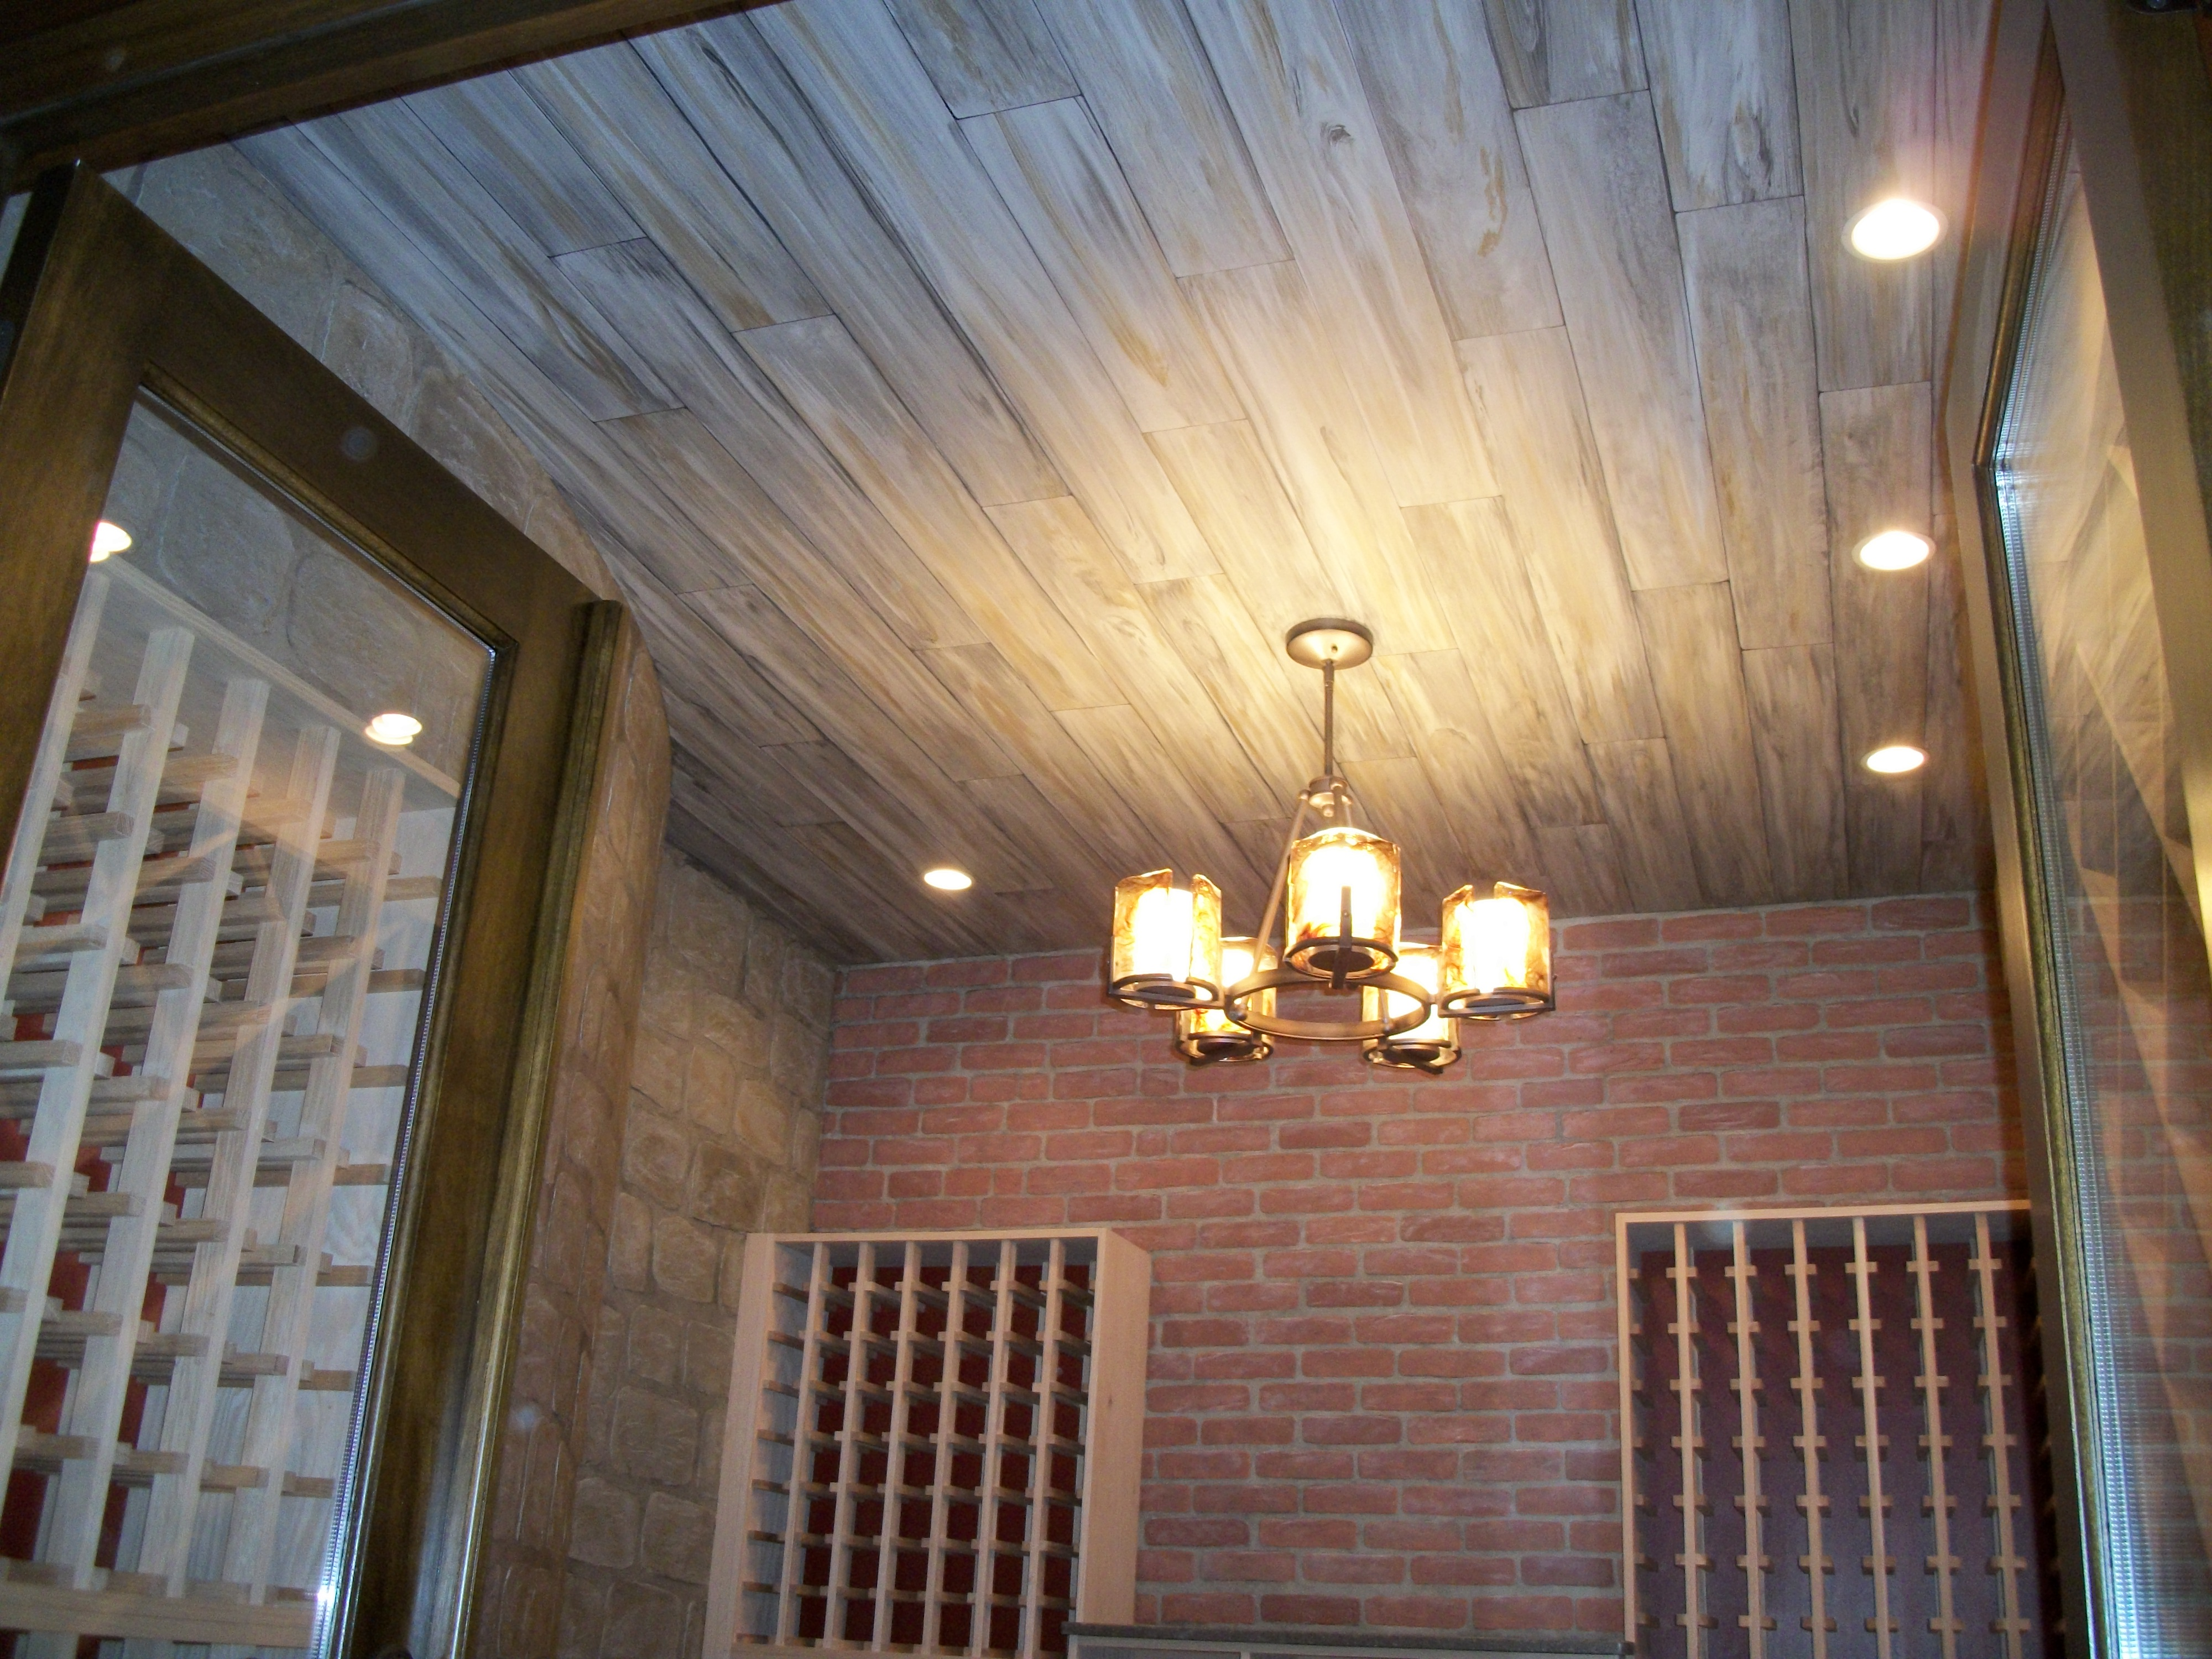 Faux barn wood ceiling, with faux brick & stone walls.